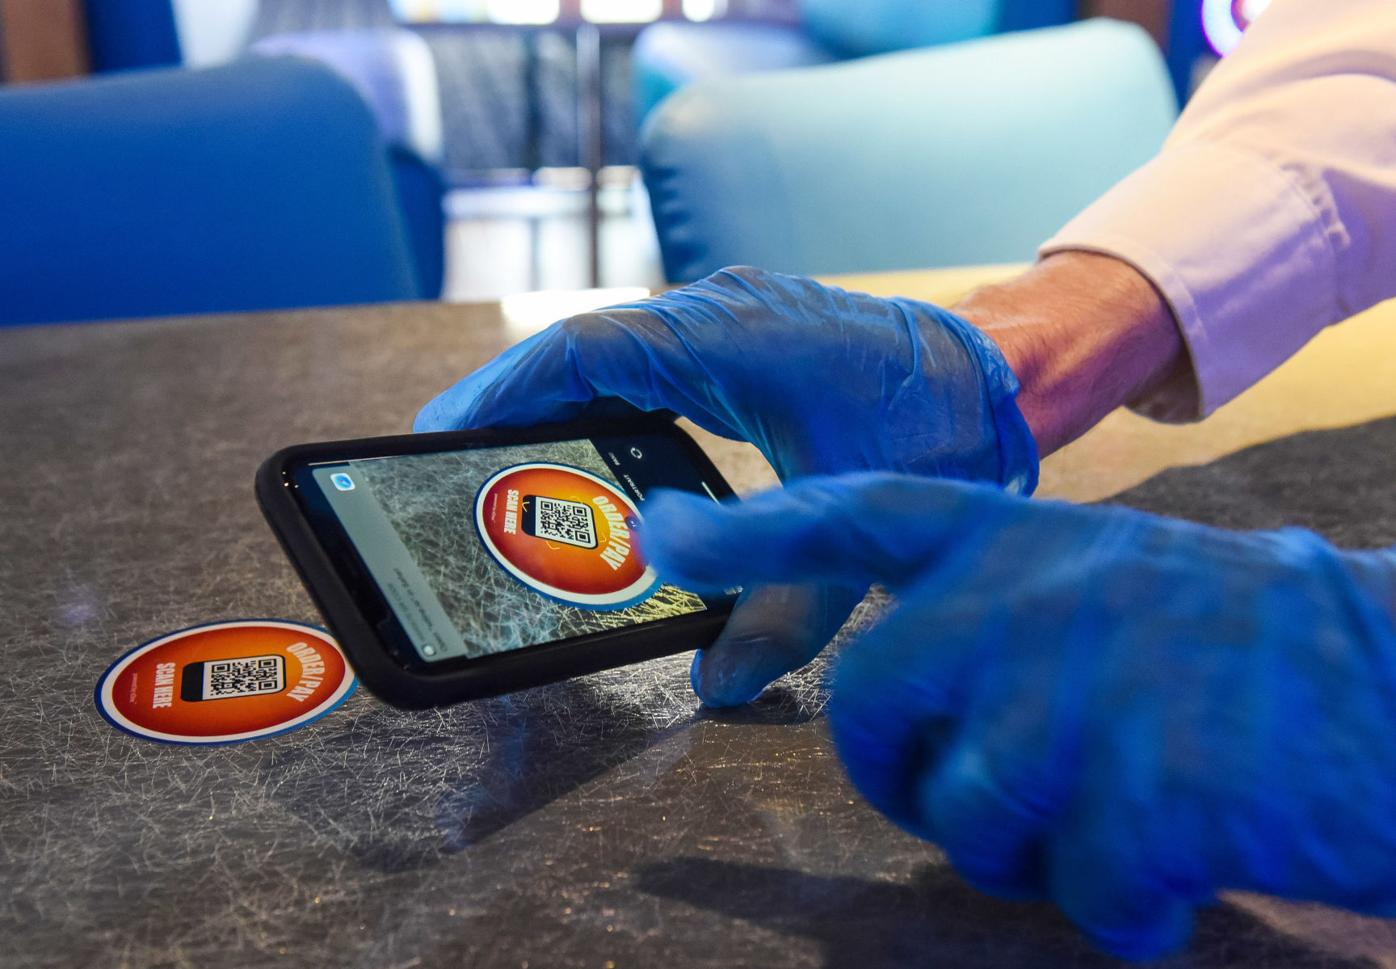 Order food using your phone at Dave & Buster's